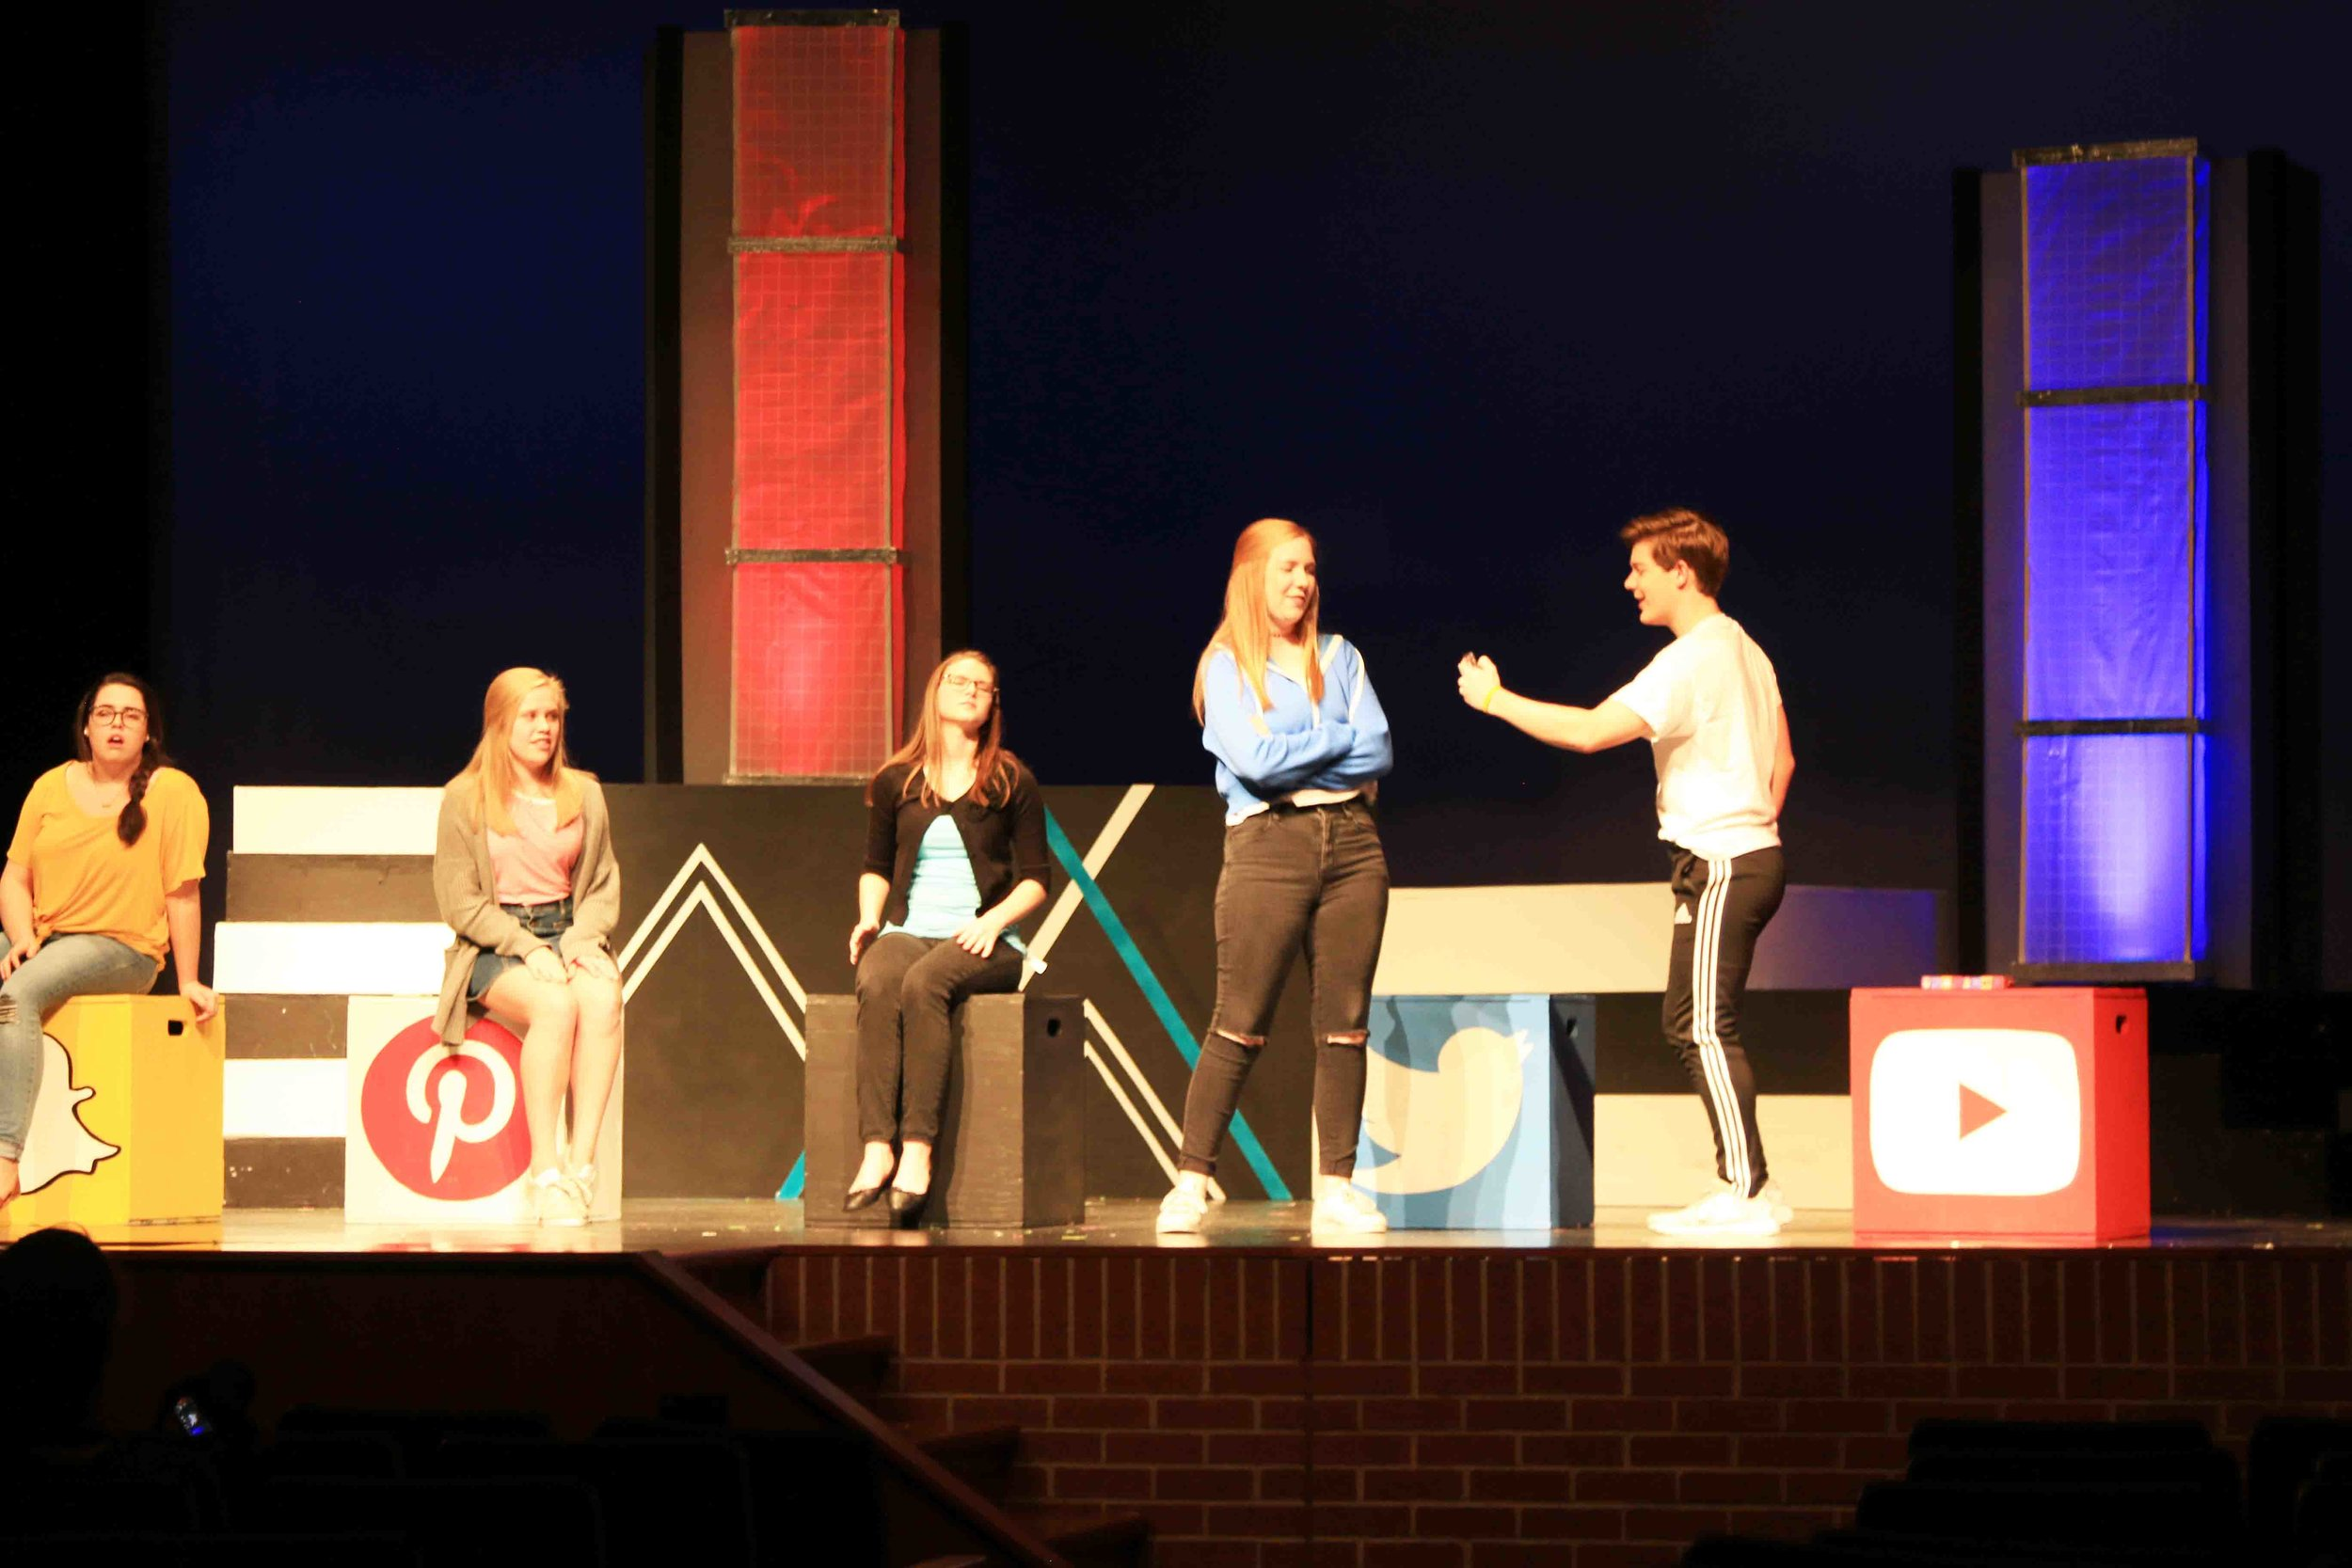 "(From left) Riley Bergwall, Emma Boland, Julia Dobbs, Sylvia Hansen and Alec Welhouse - ""Social Media"" characters of Twitter and YouTube arguing who is the better social media platform."